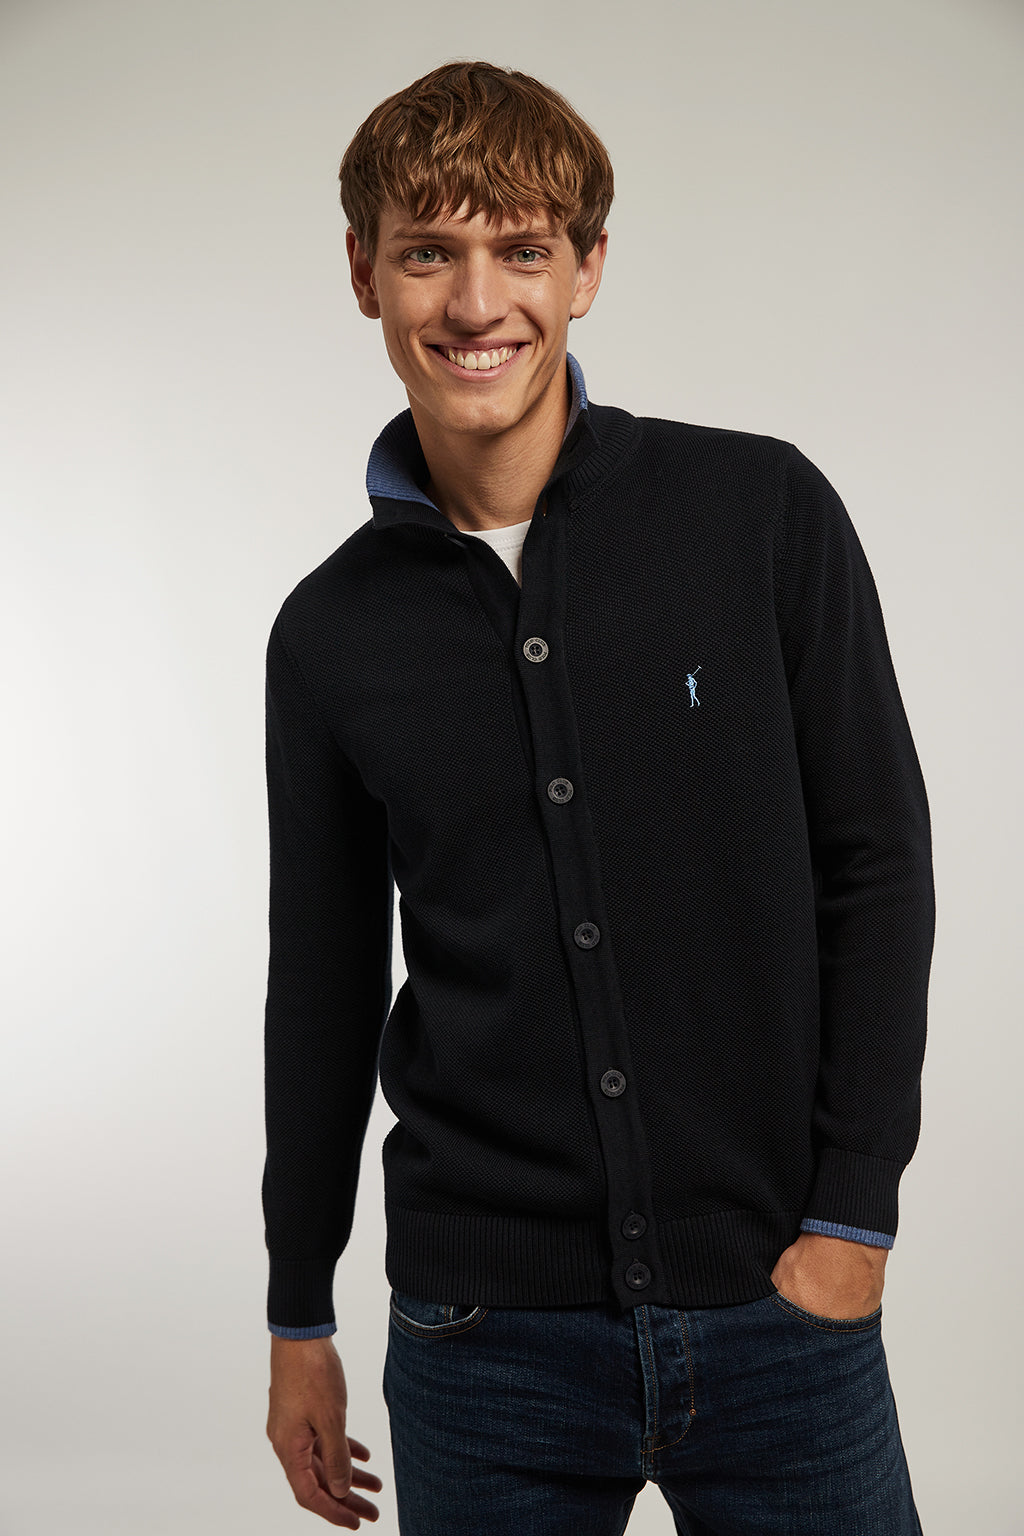 Navy blue cardigan with structure and high collar